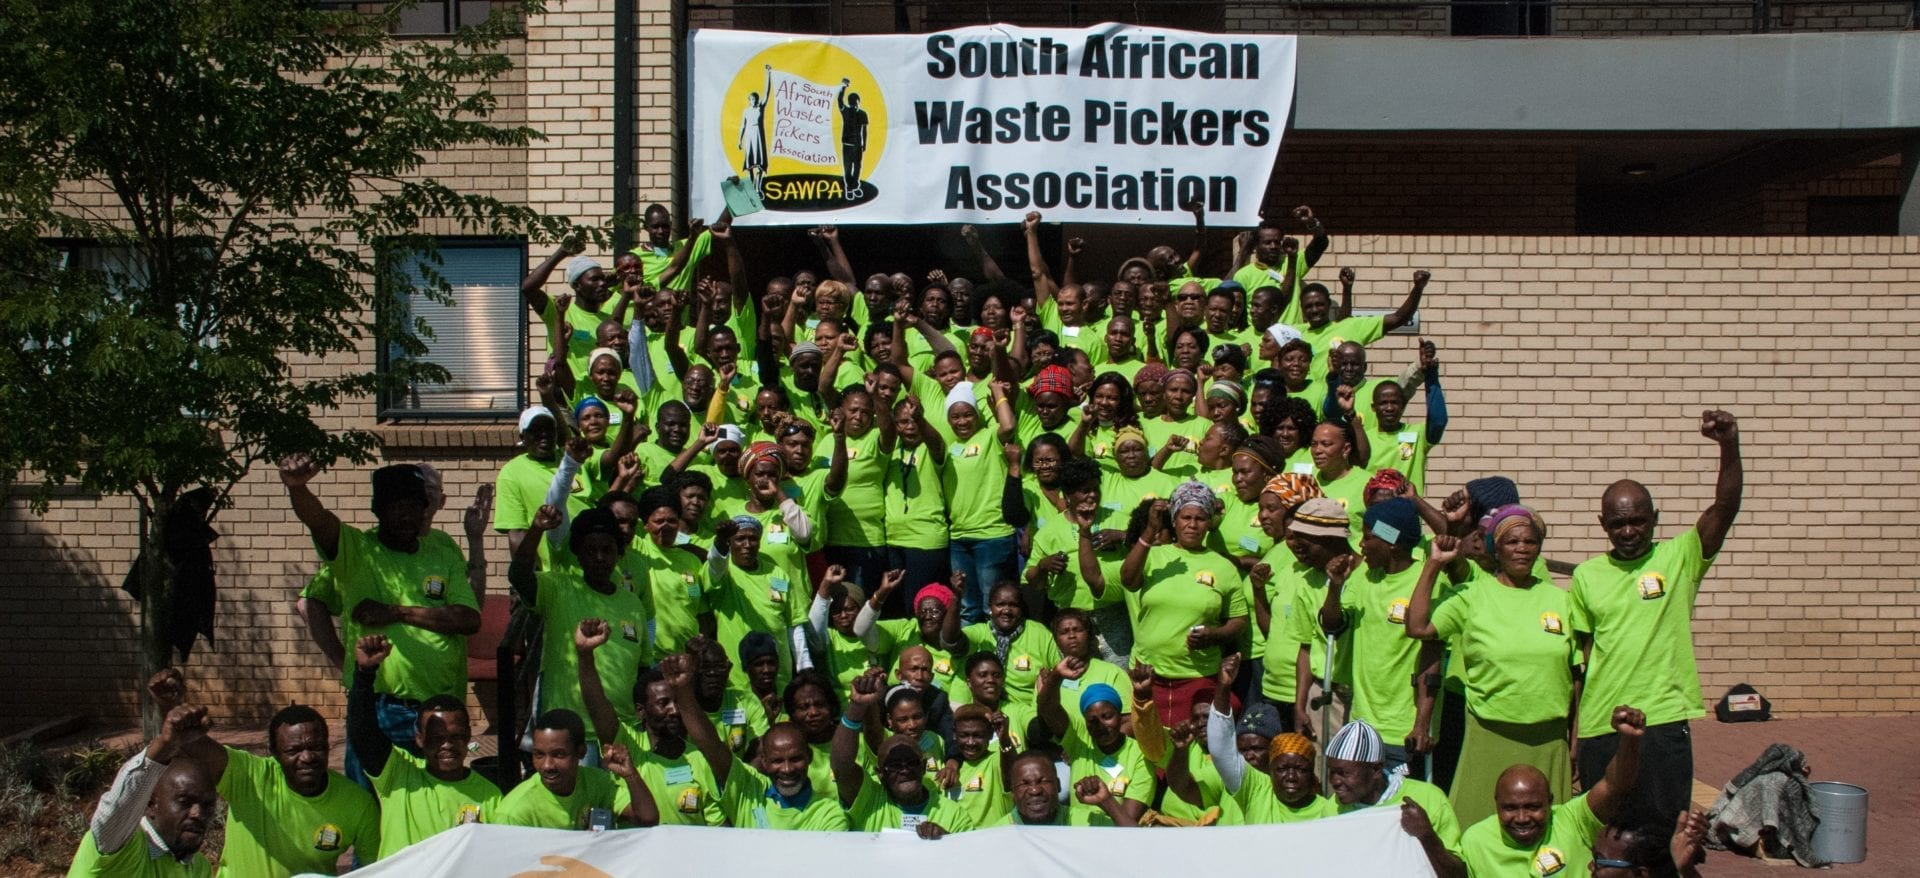 Members of the South African Waste Pickers association